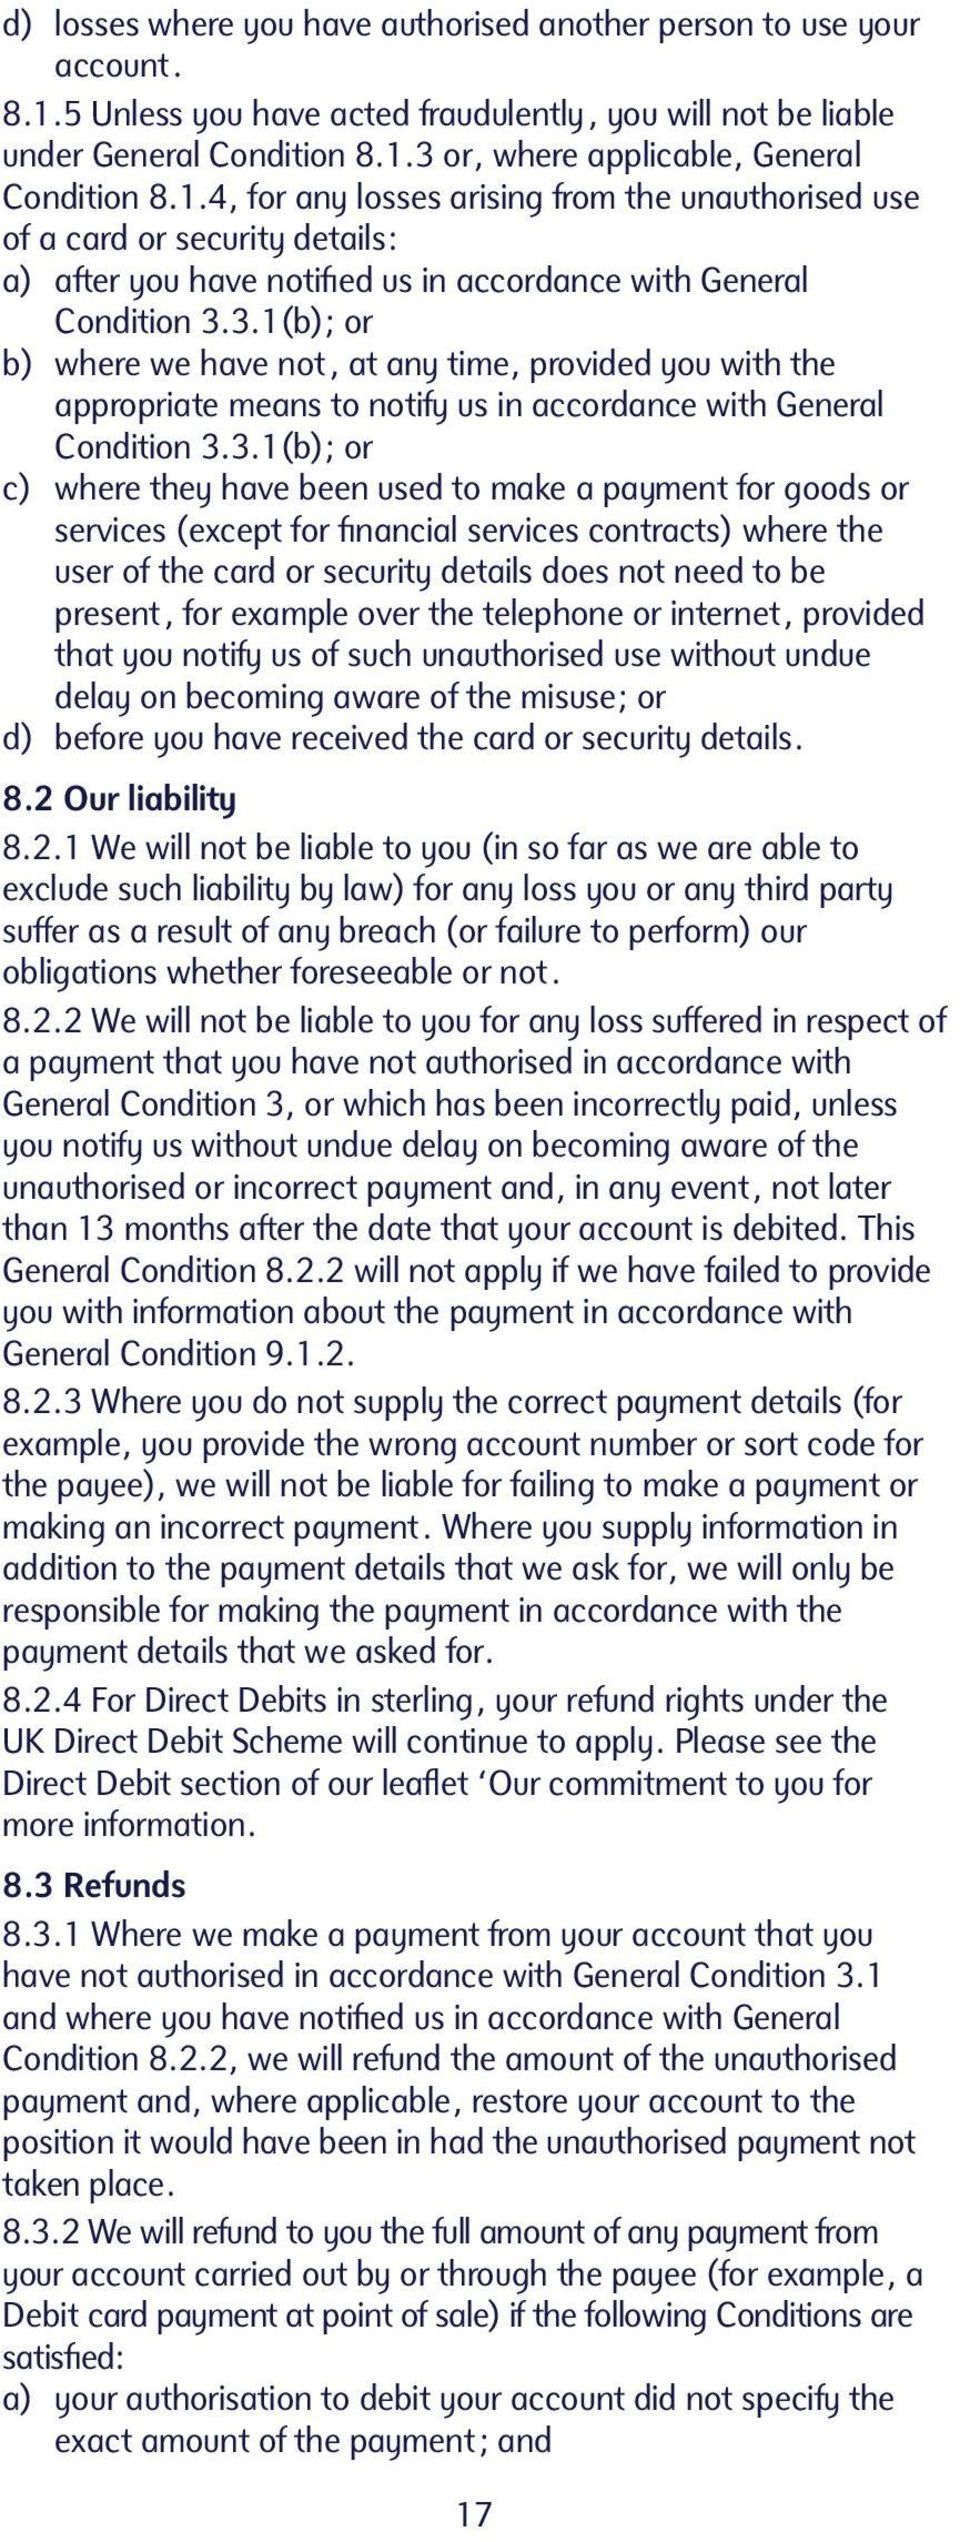 3.1(b); or b) where we have not, at any time, provided you with the appropriate means to notify us in accordance with General Condition 3.3.1(b); or c) where they have been used to make a payment for